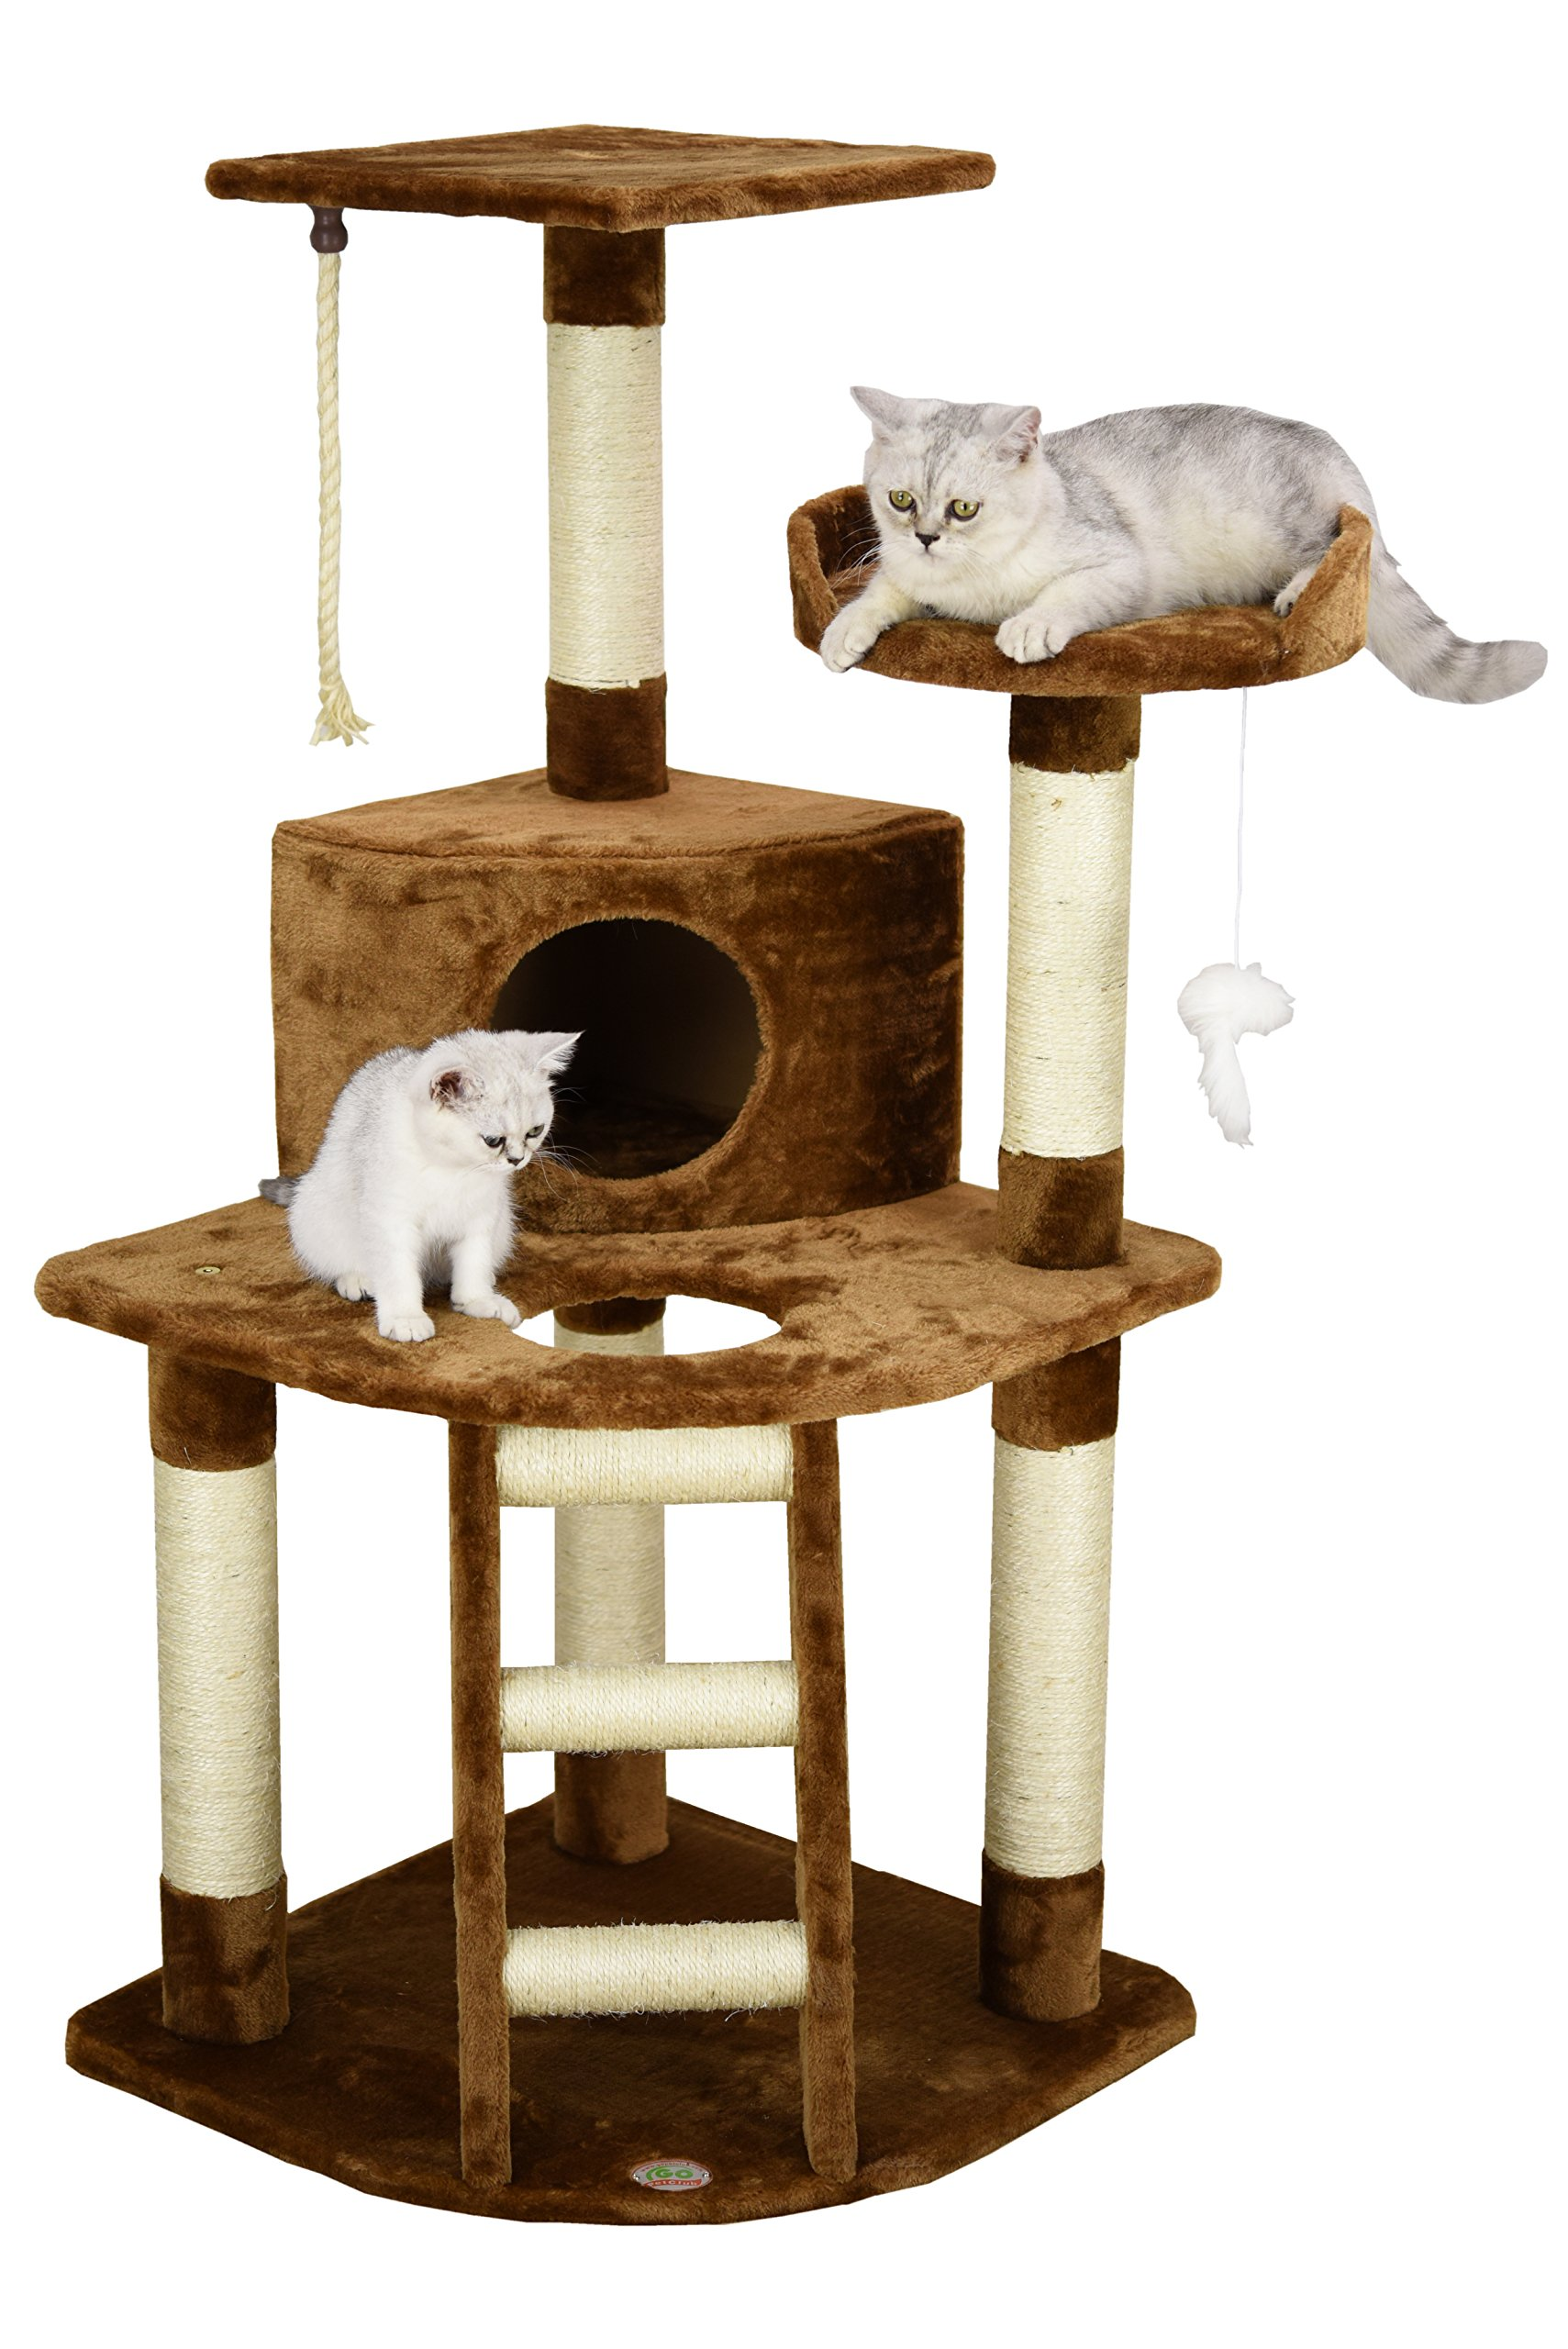 Go Pet Club Cat Tree,47.5-inch,Brown by Go Pet Club